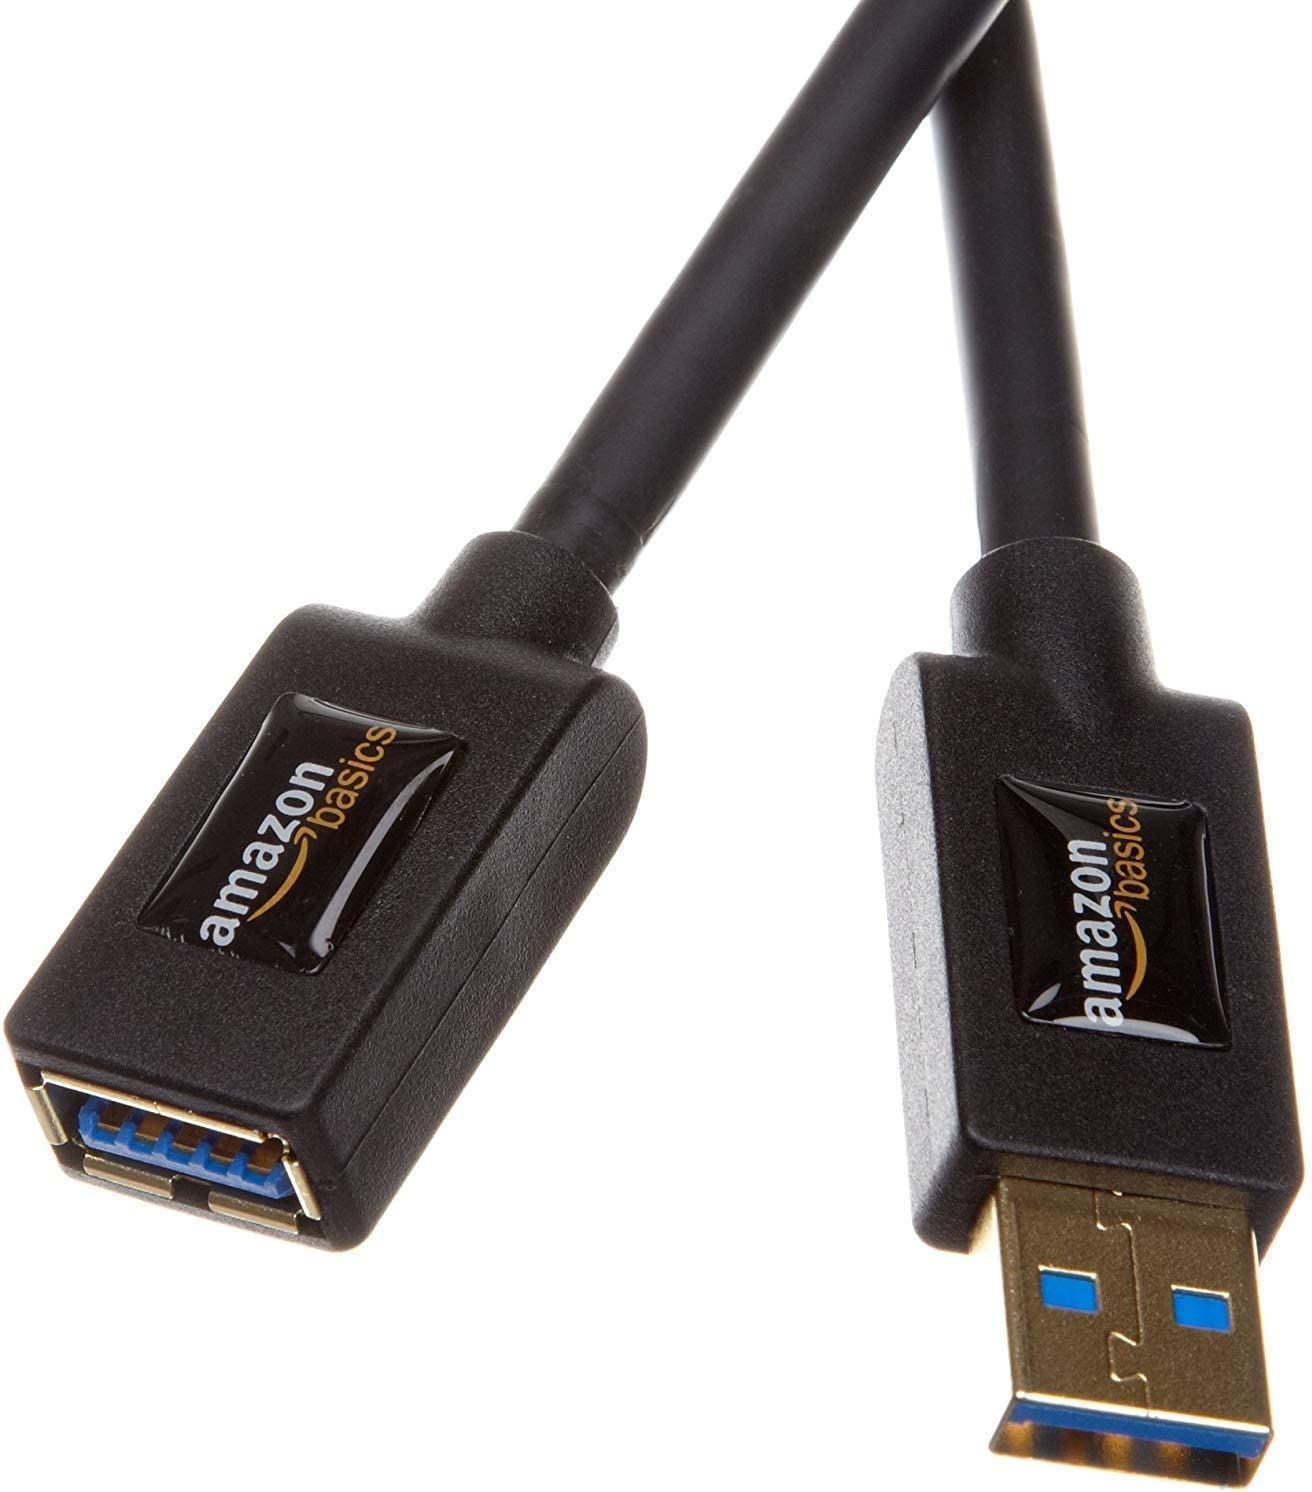 2 Pak Amazon basics 2.0 USB A-Male to USB A-Female extension cable 1meter